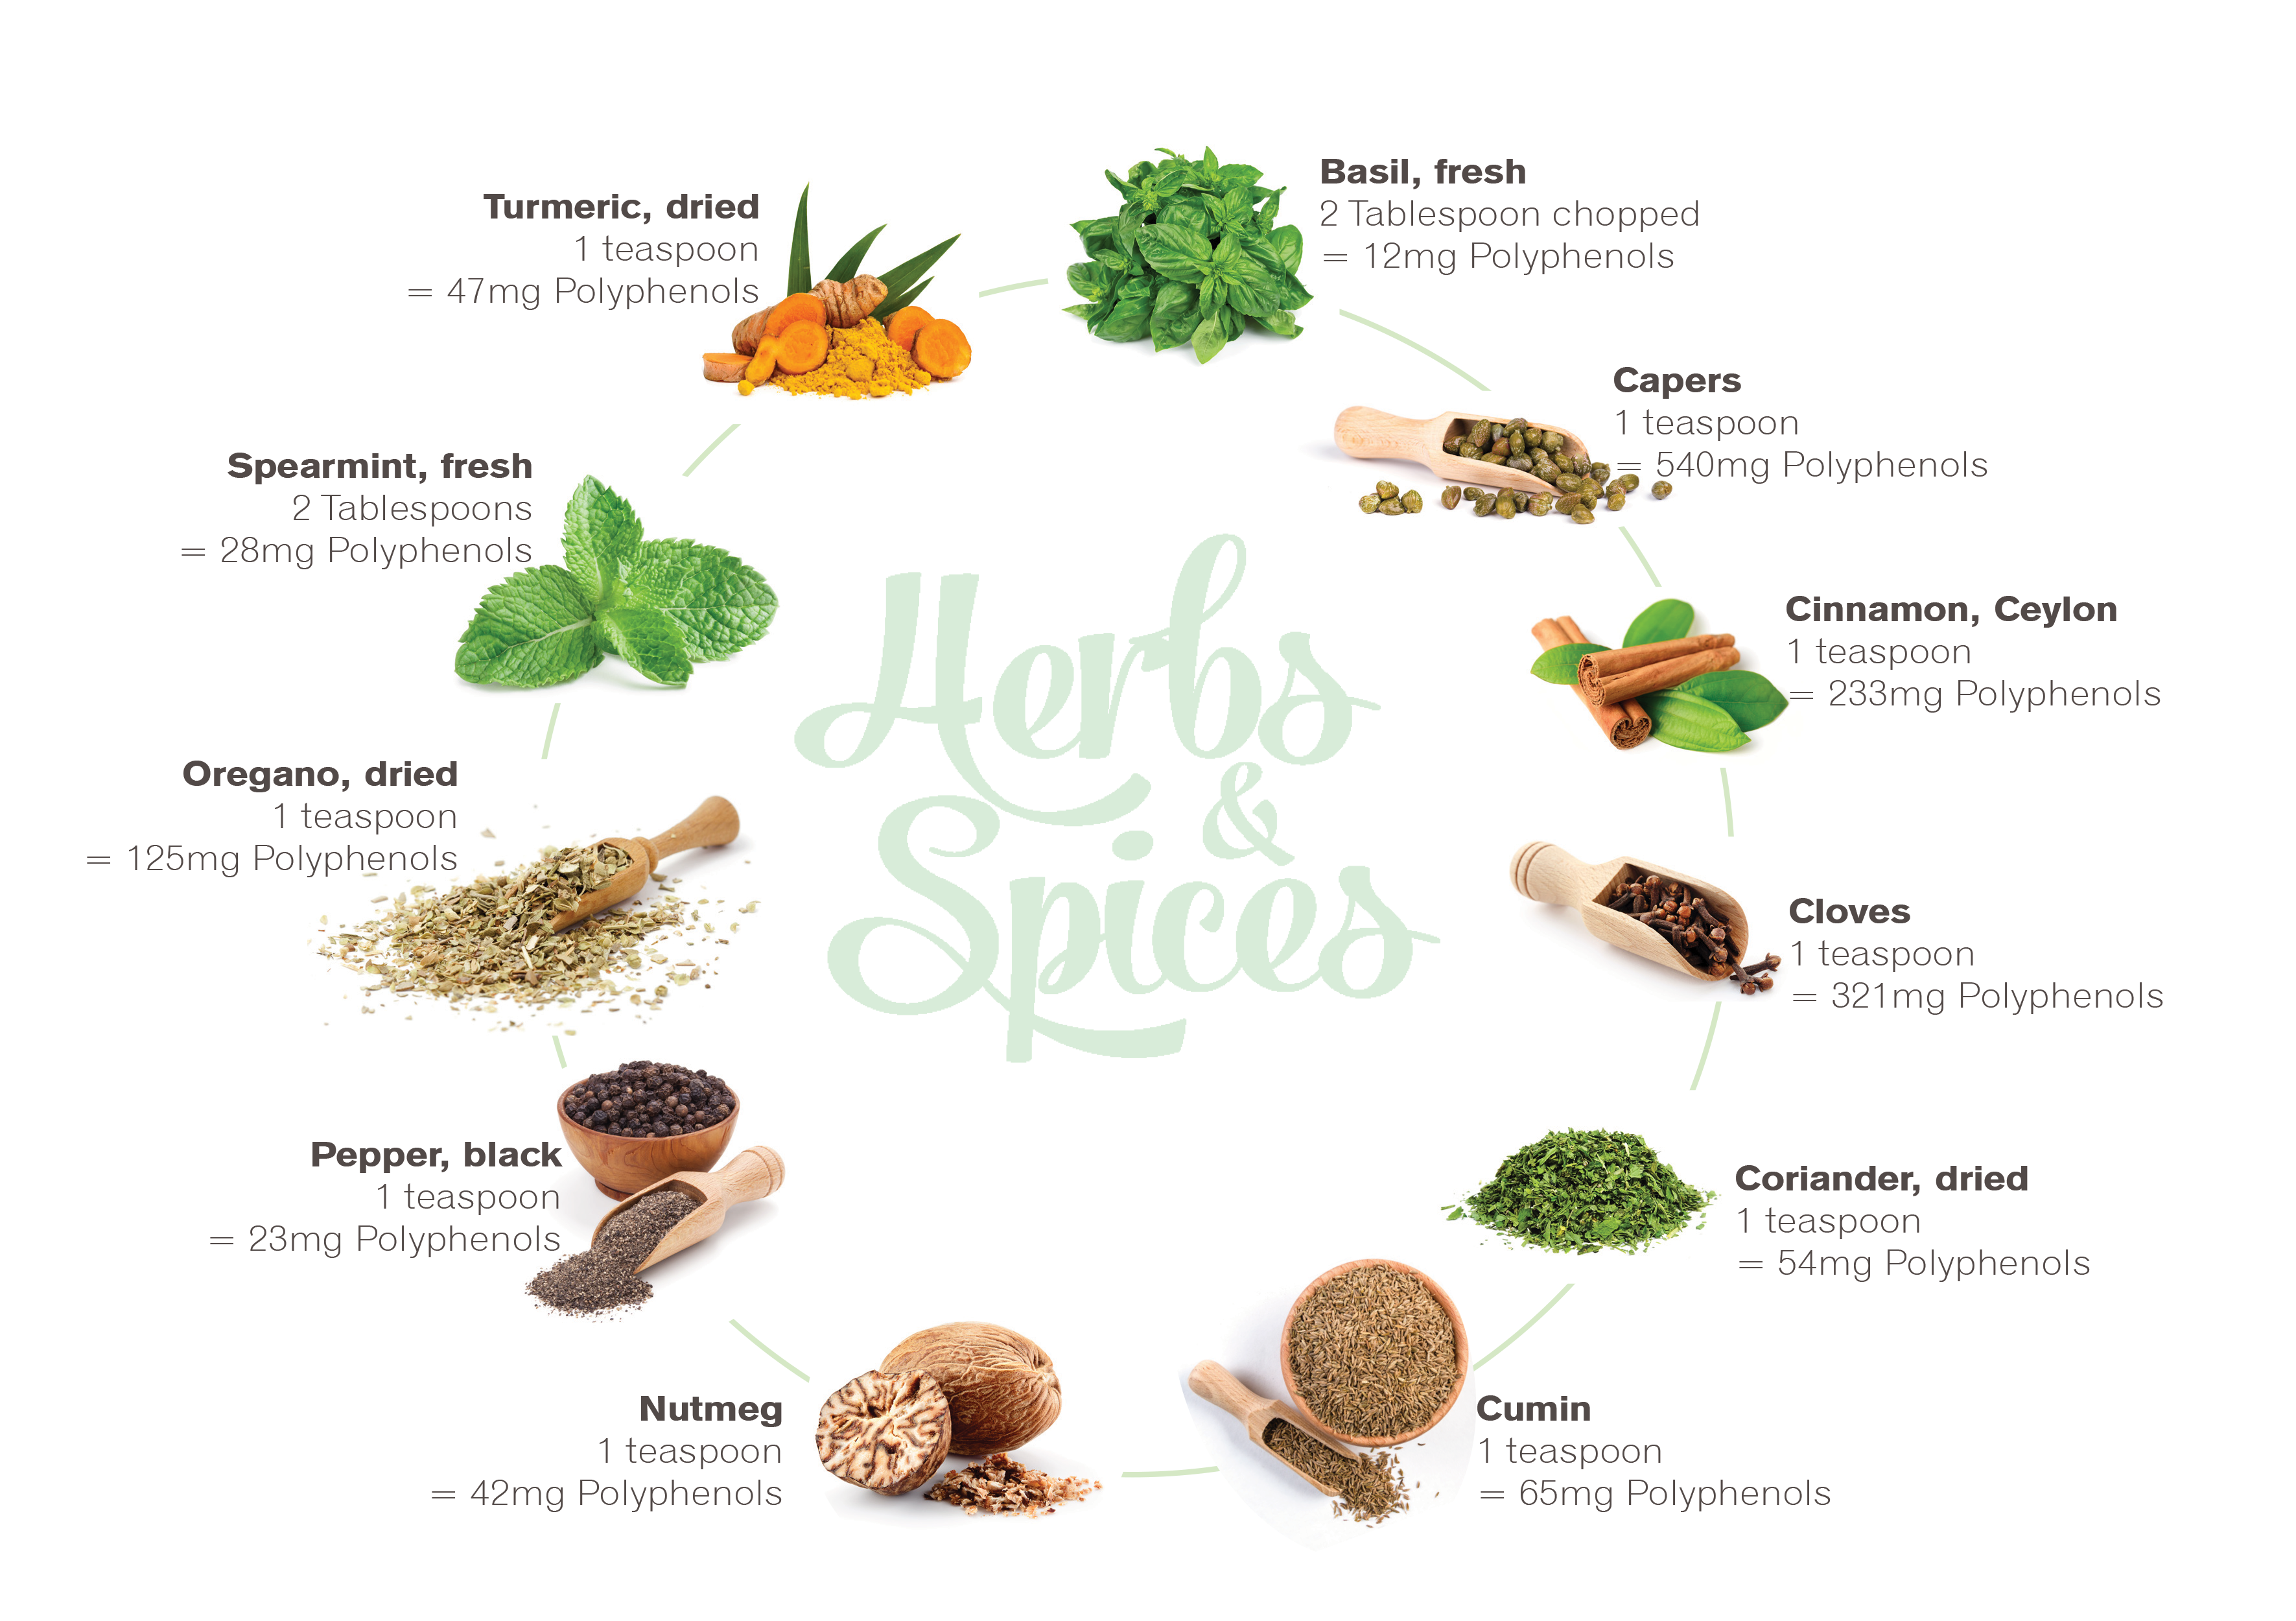 101019---Herbs-&-Spices-art2